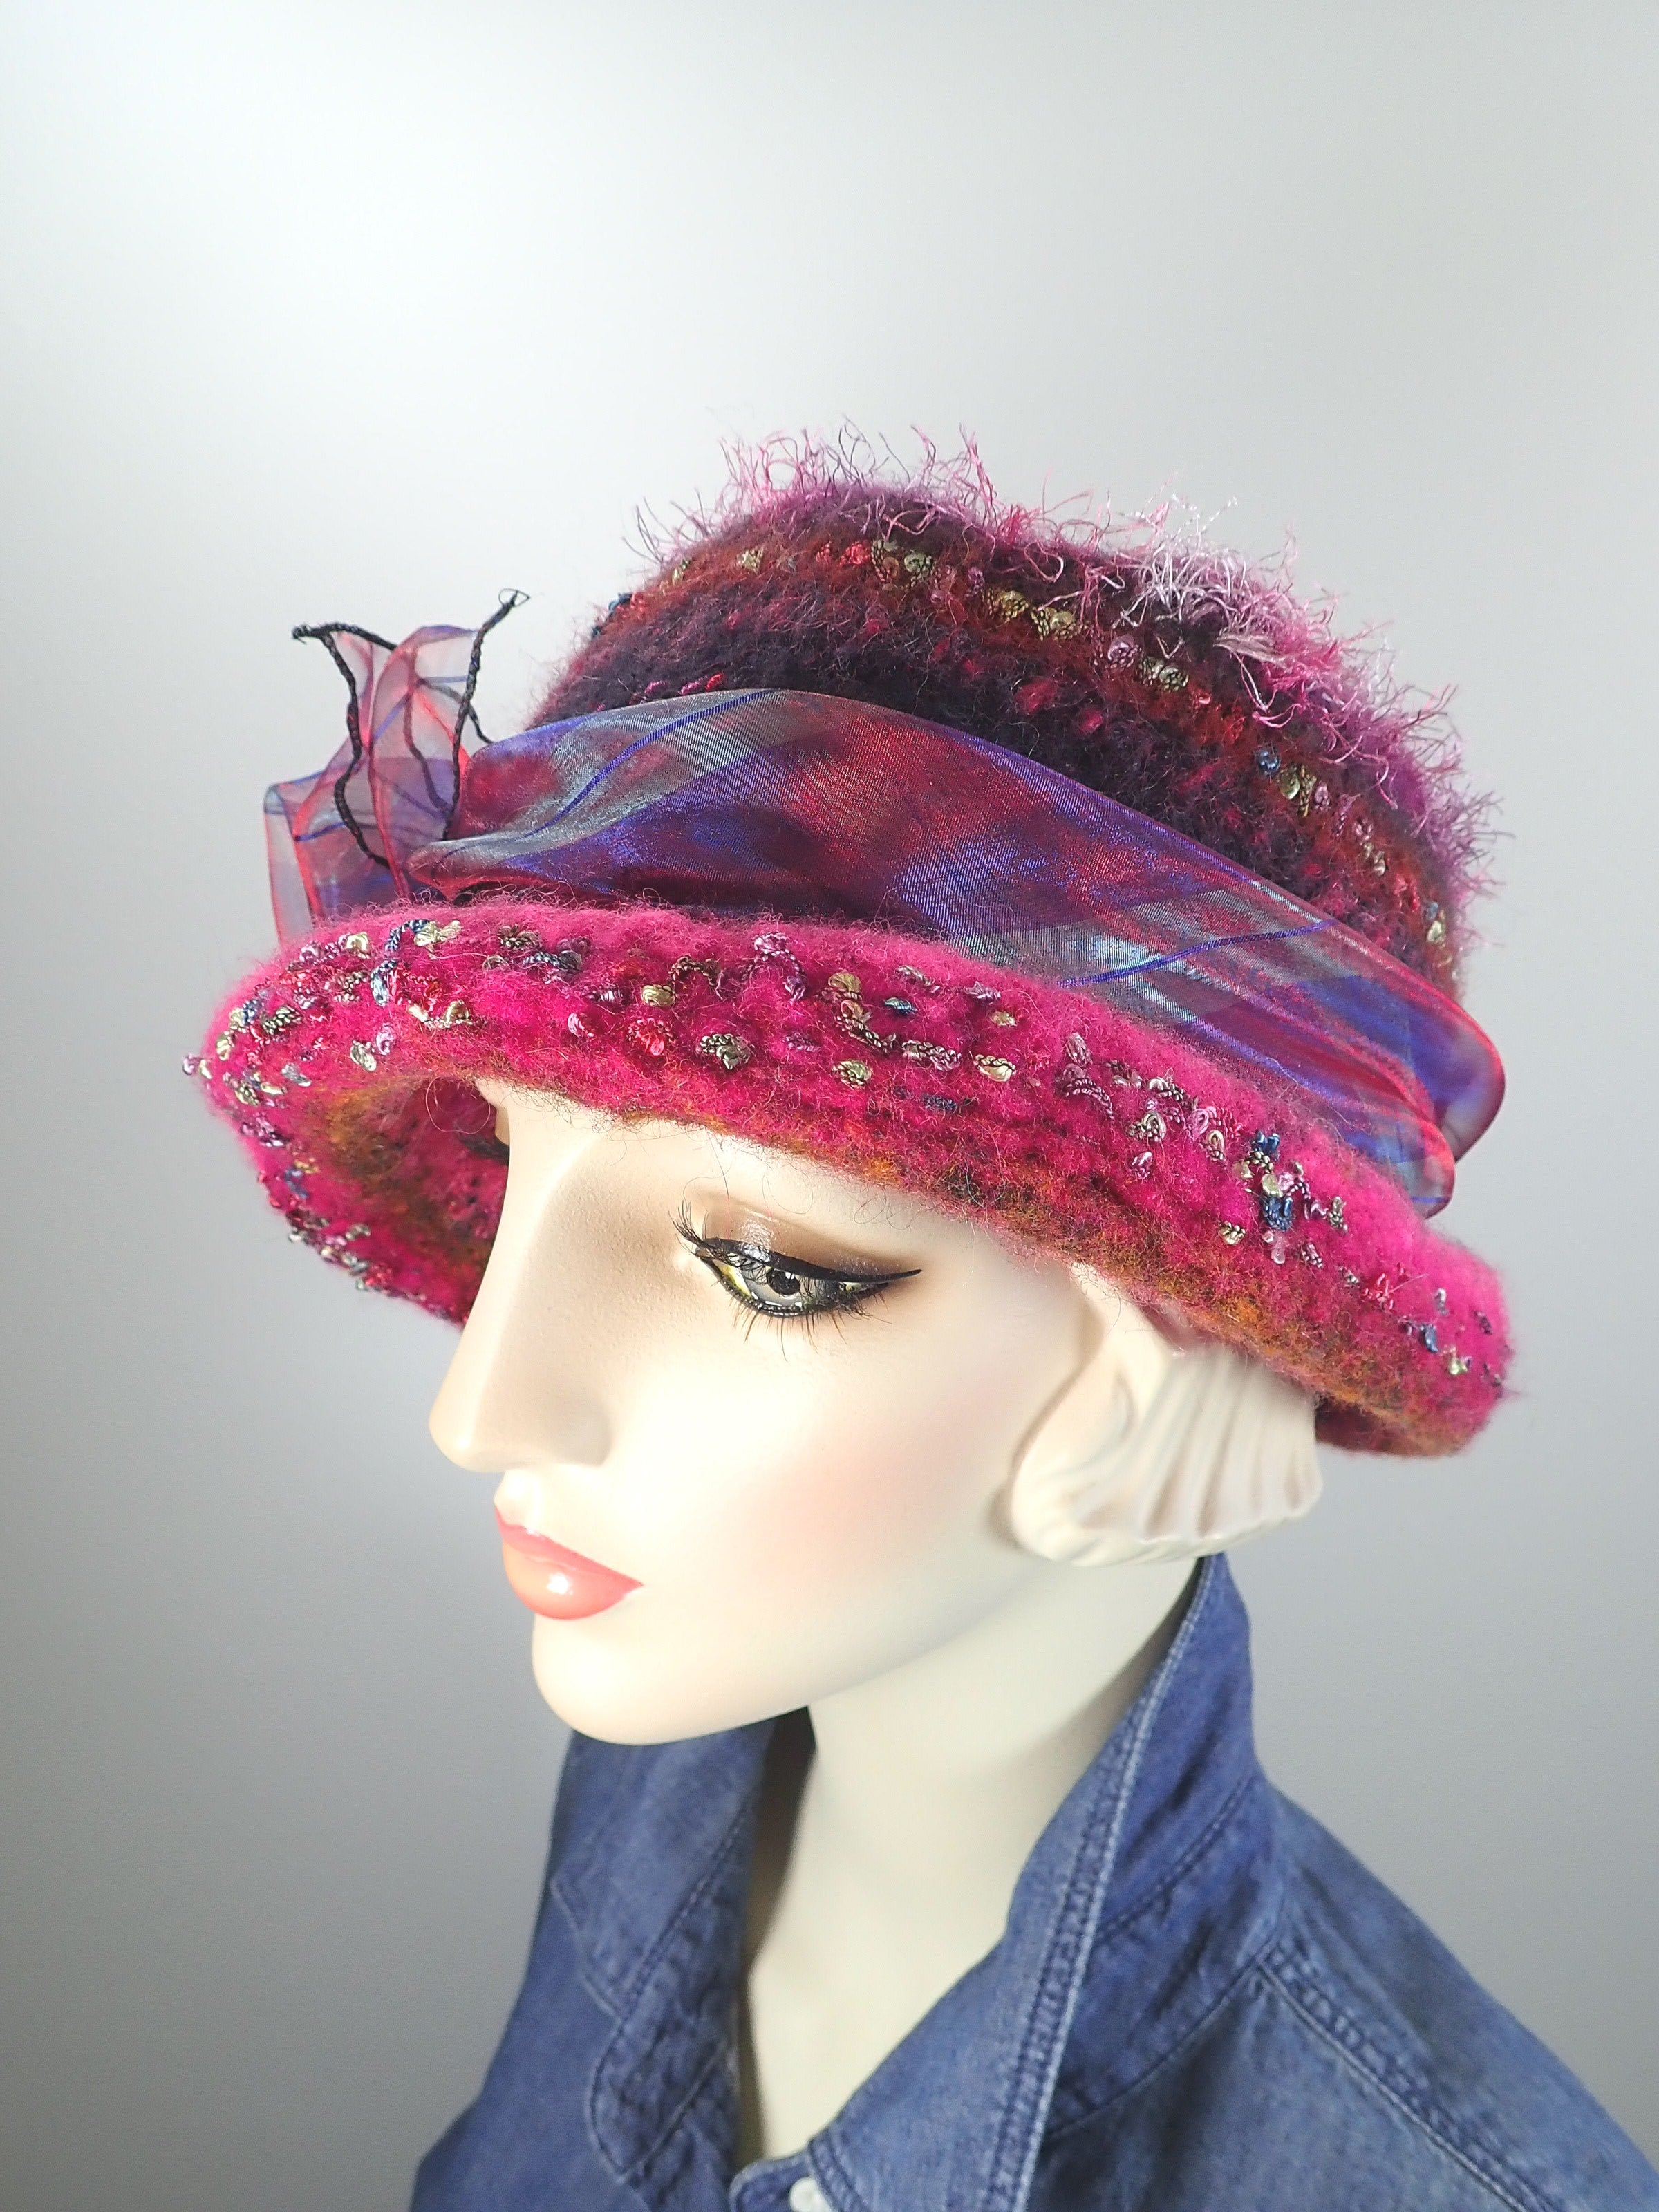 Womens pink boiled wool felt knit hat. Pink and blue warm winter cloche. Funky casual cloche hat. Gatsby flapper style hat.